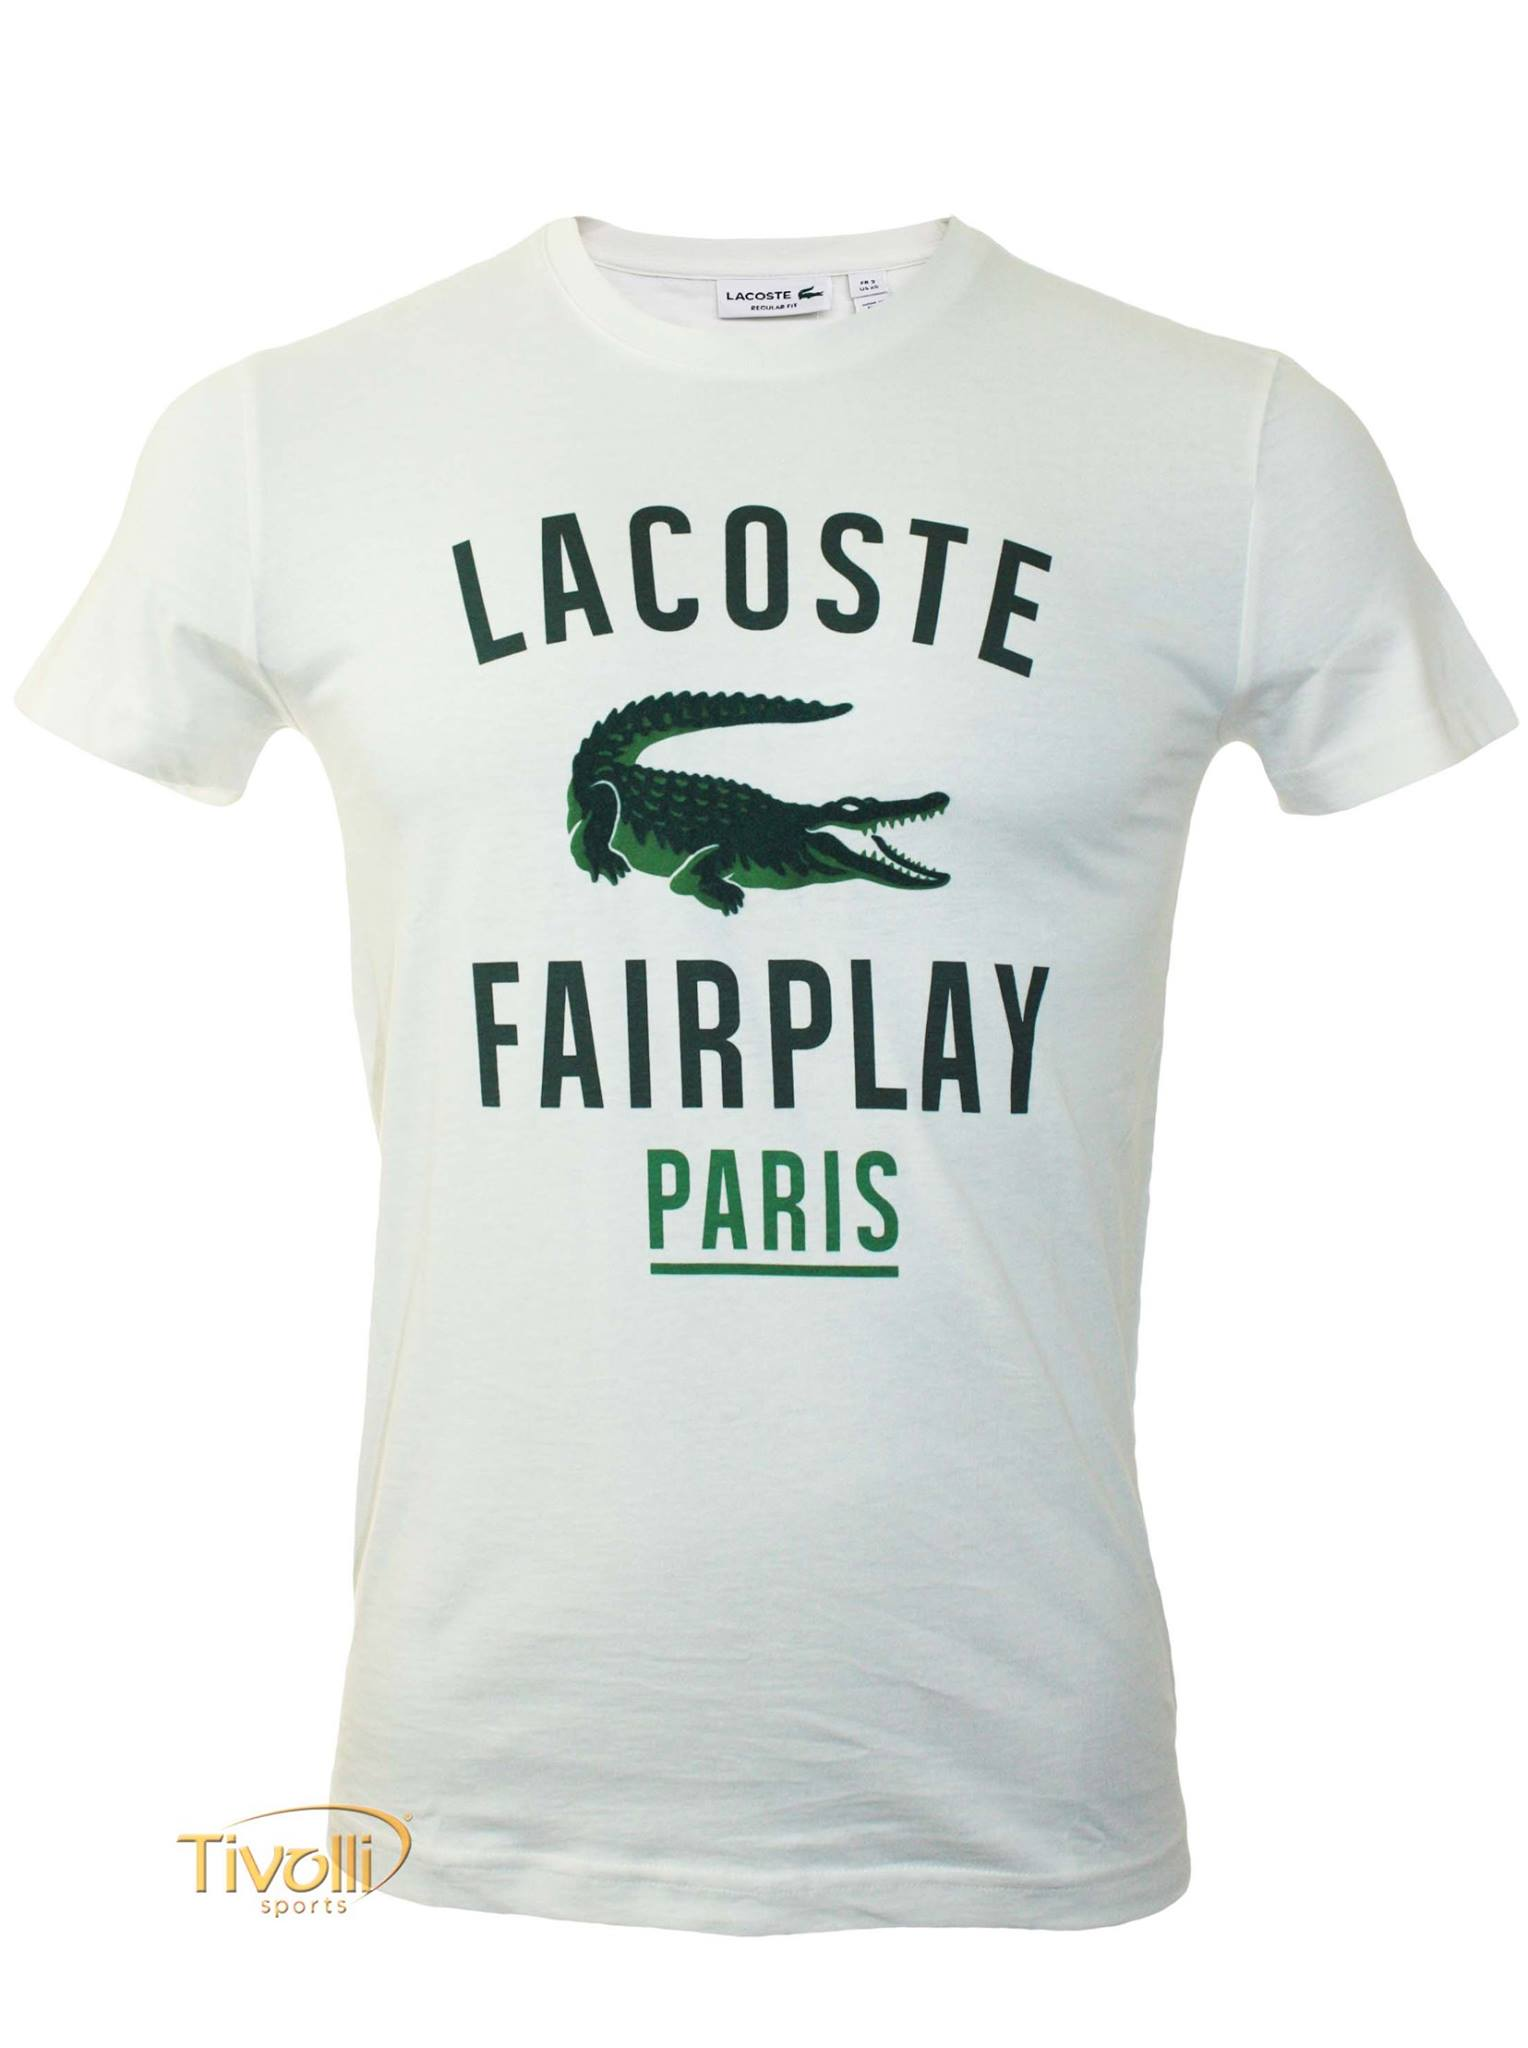 Camiseta Lacoste Fairplay Paris